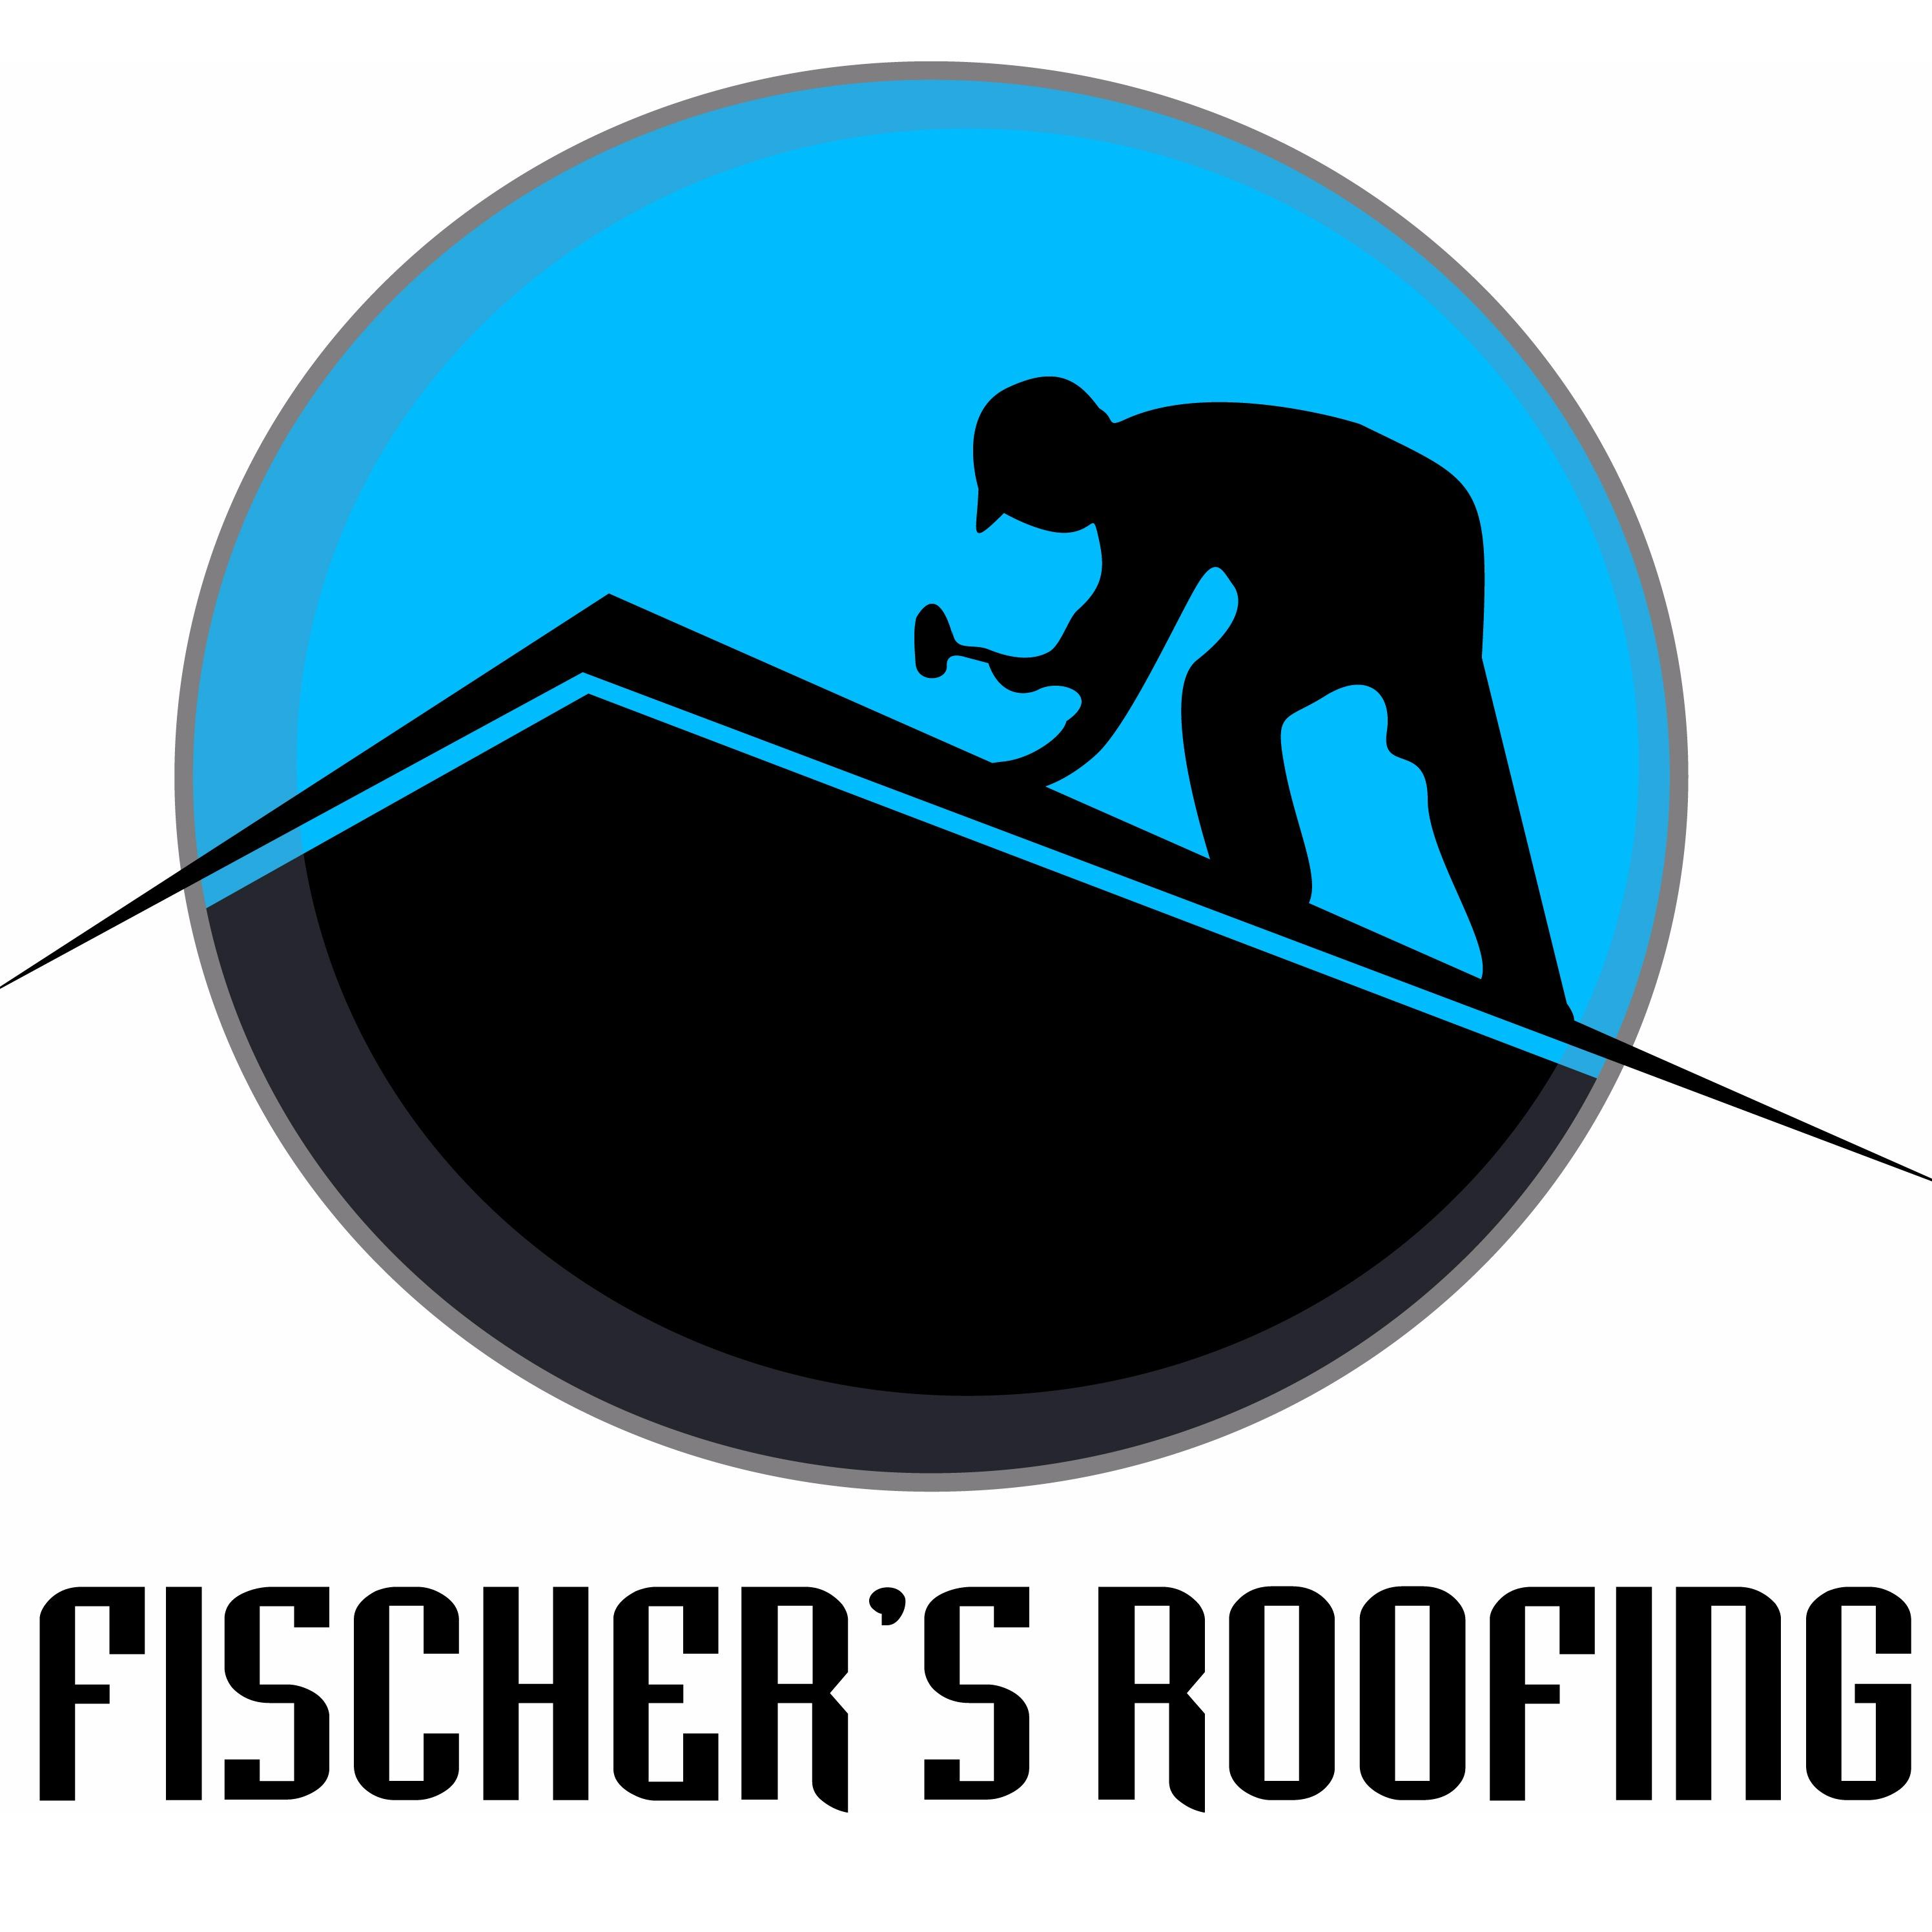 Fischer's Roofing & Siding image 0